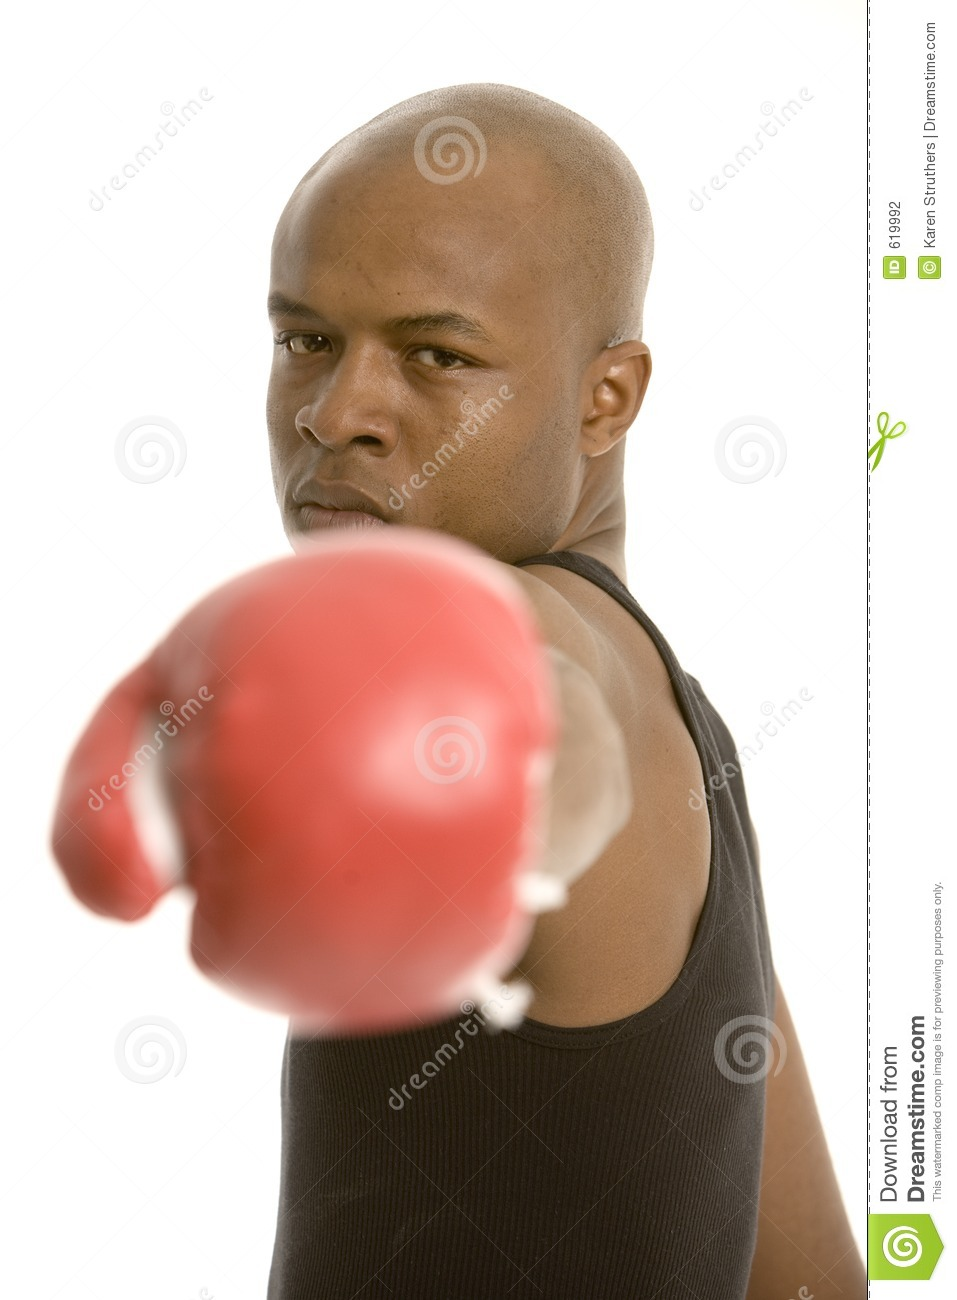 Big punch, glove not in focus